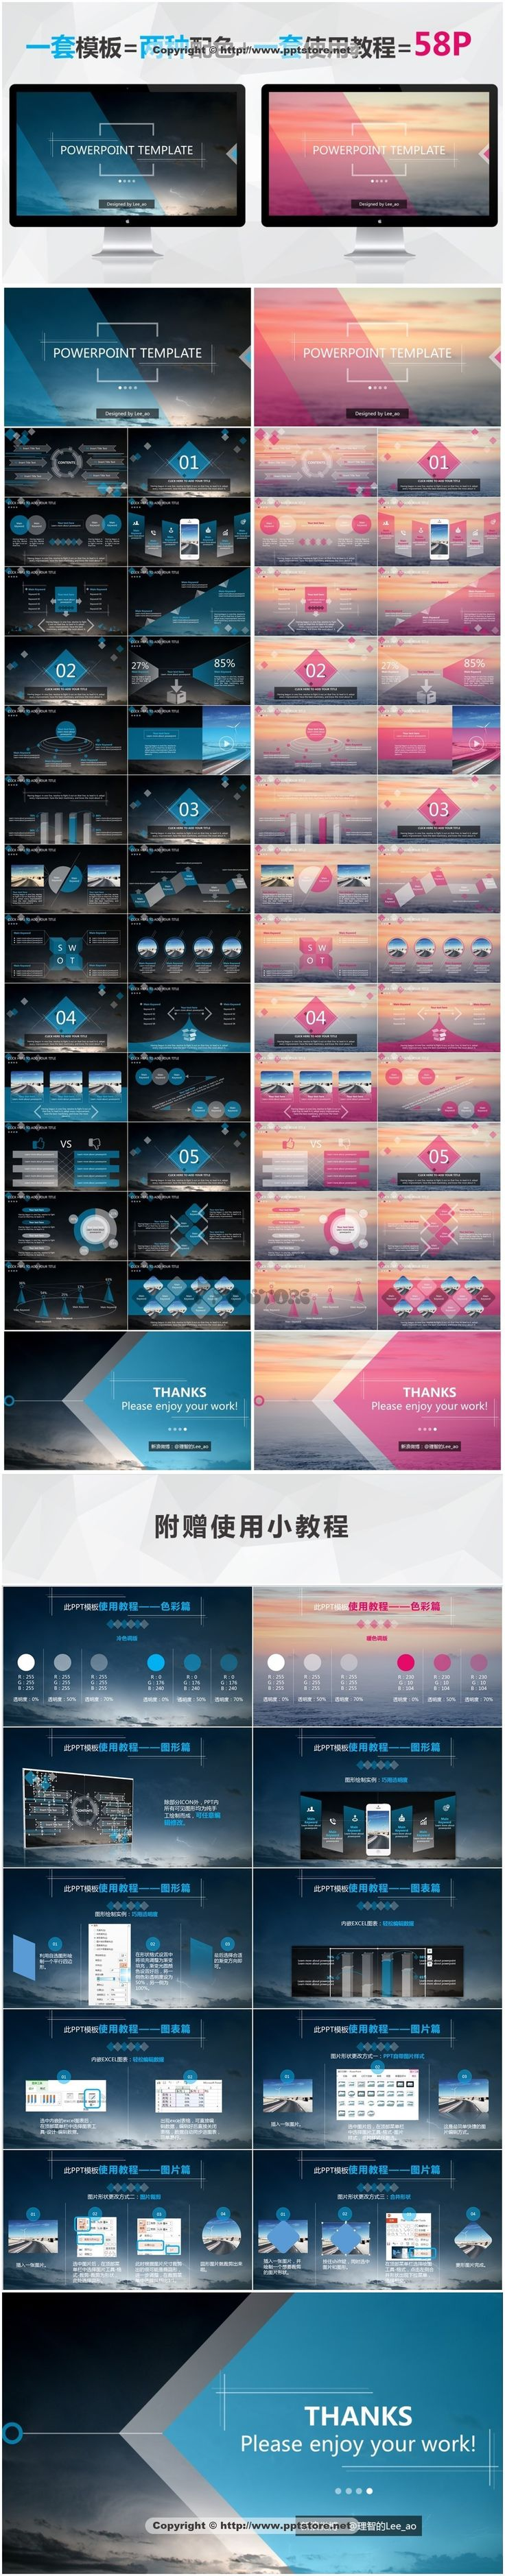 powerpoint template,download:http://www.pptstore/shangwu_ppt, Presentation templates